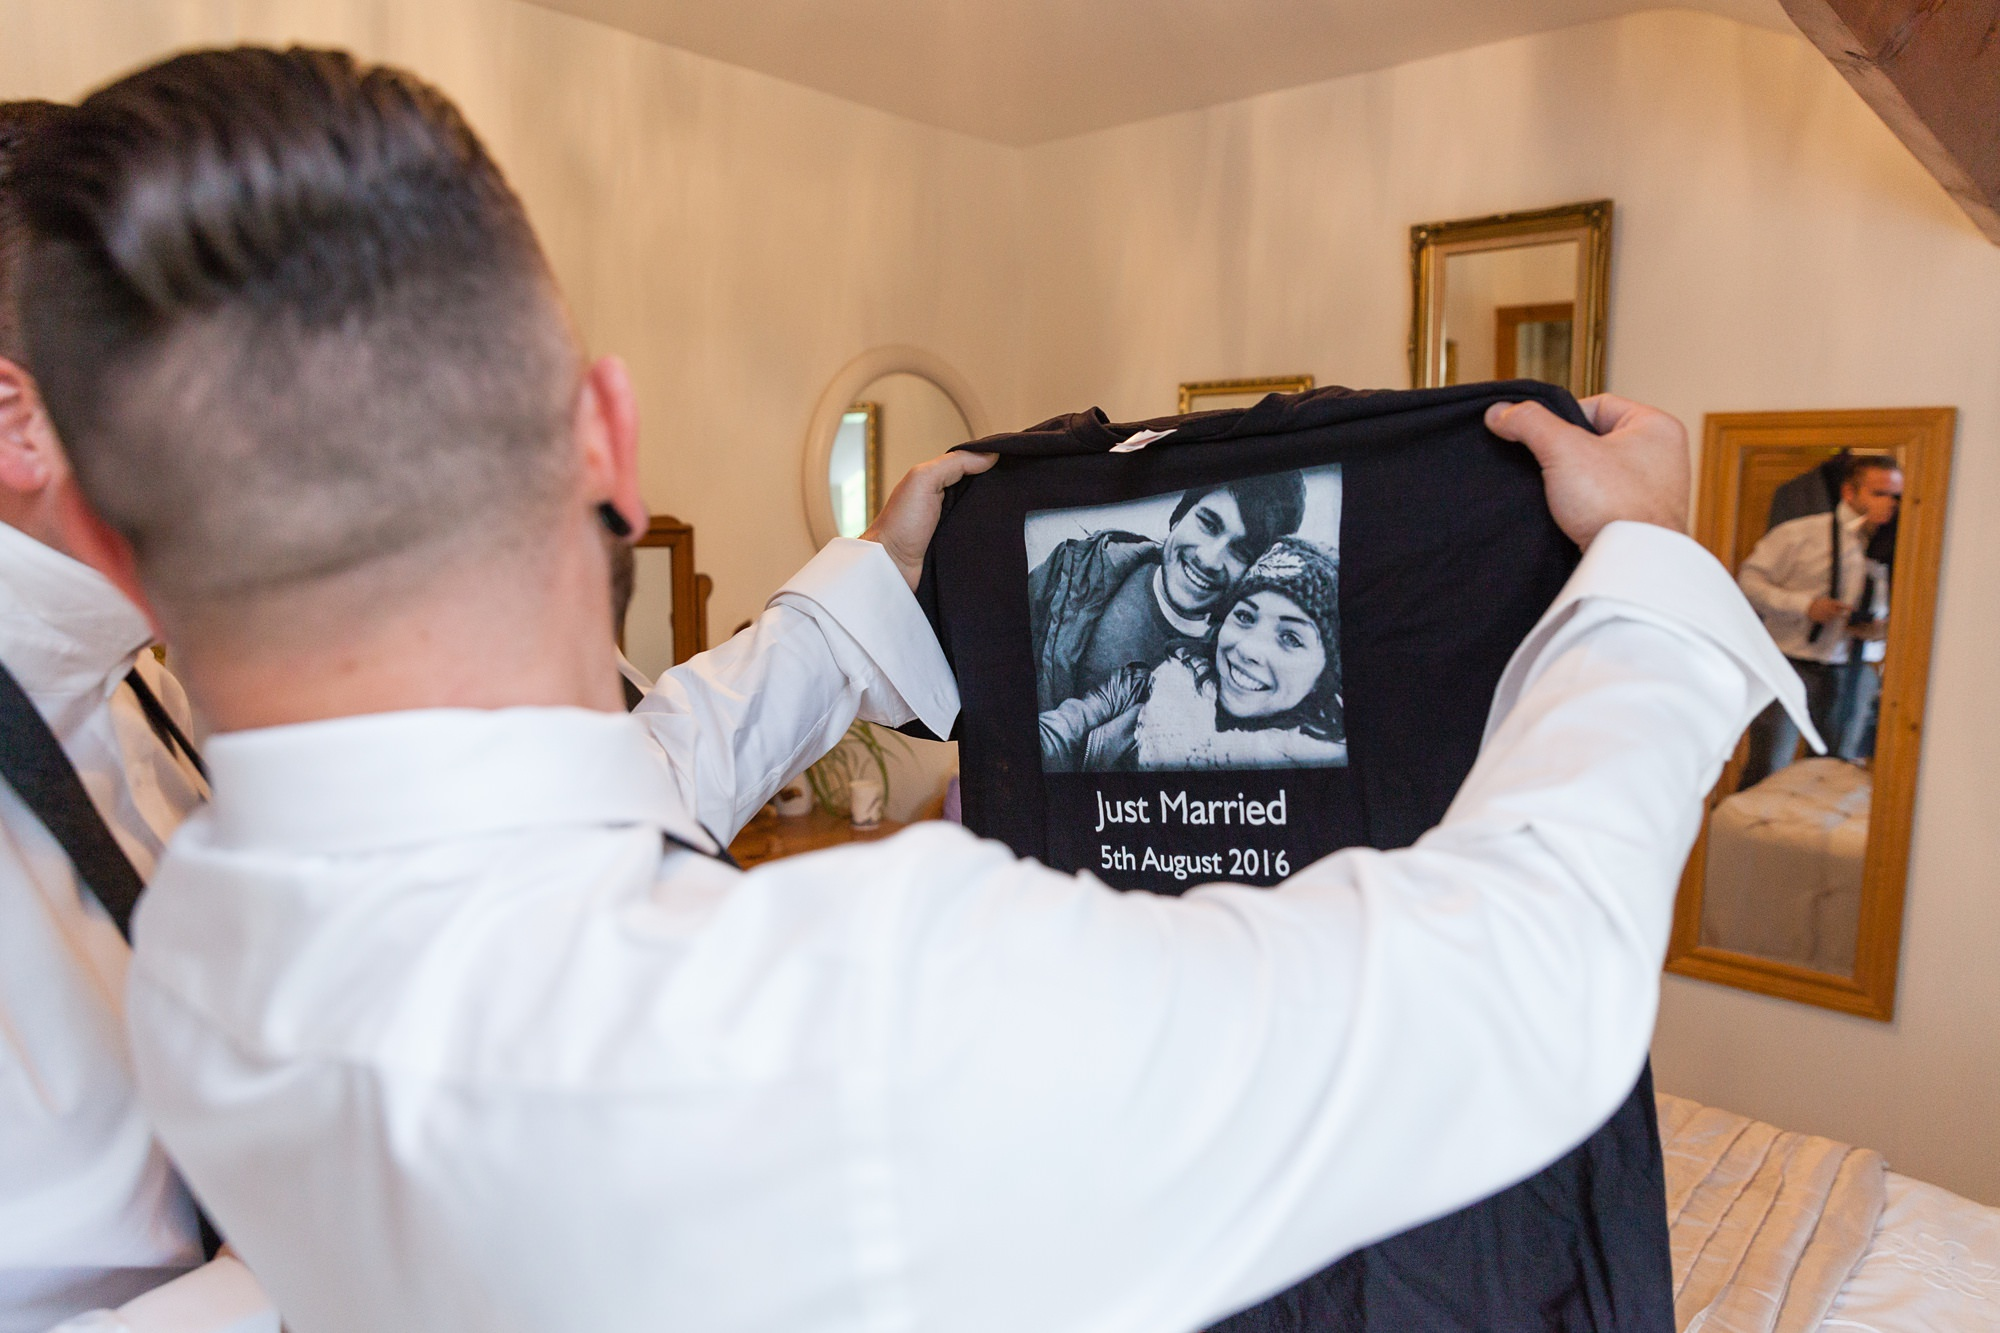 Groom looks at t-shirt made with their photo on it.